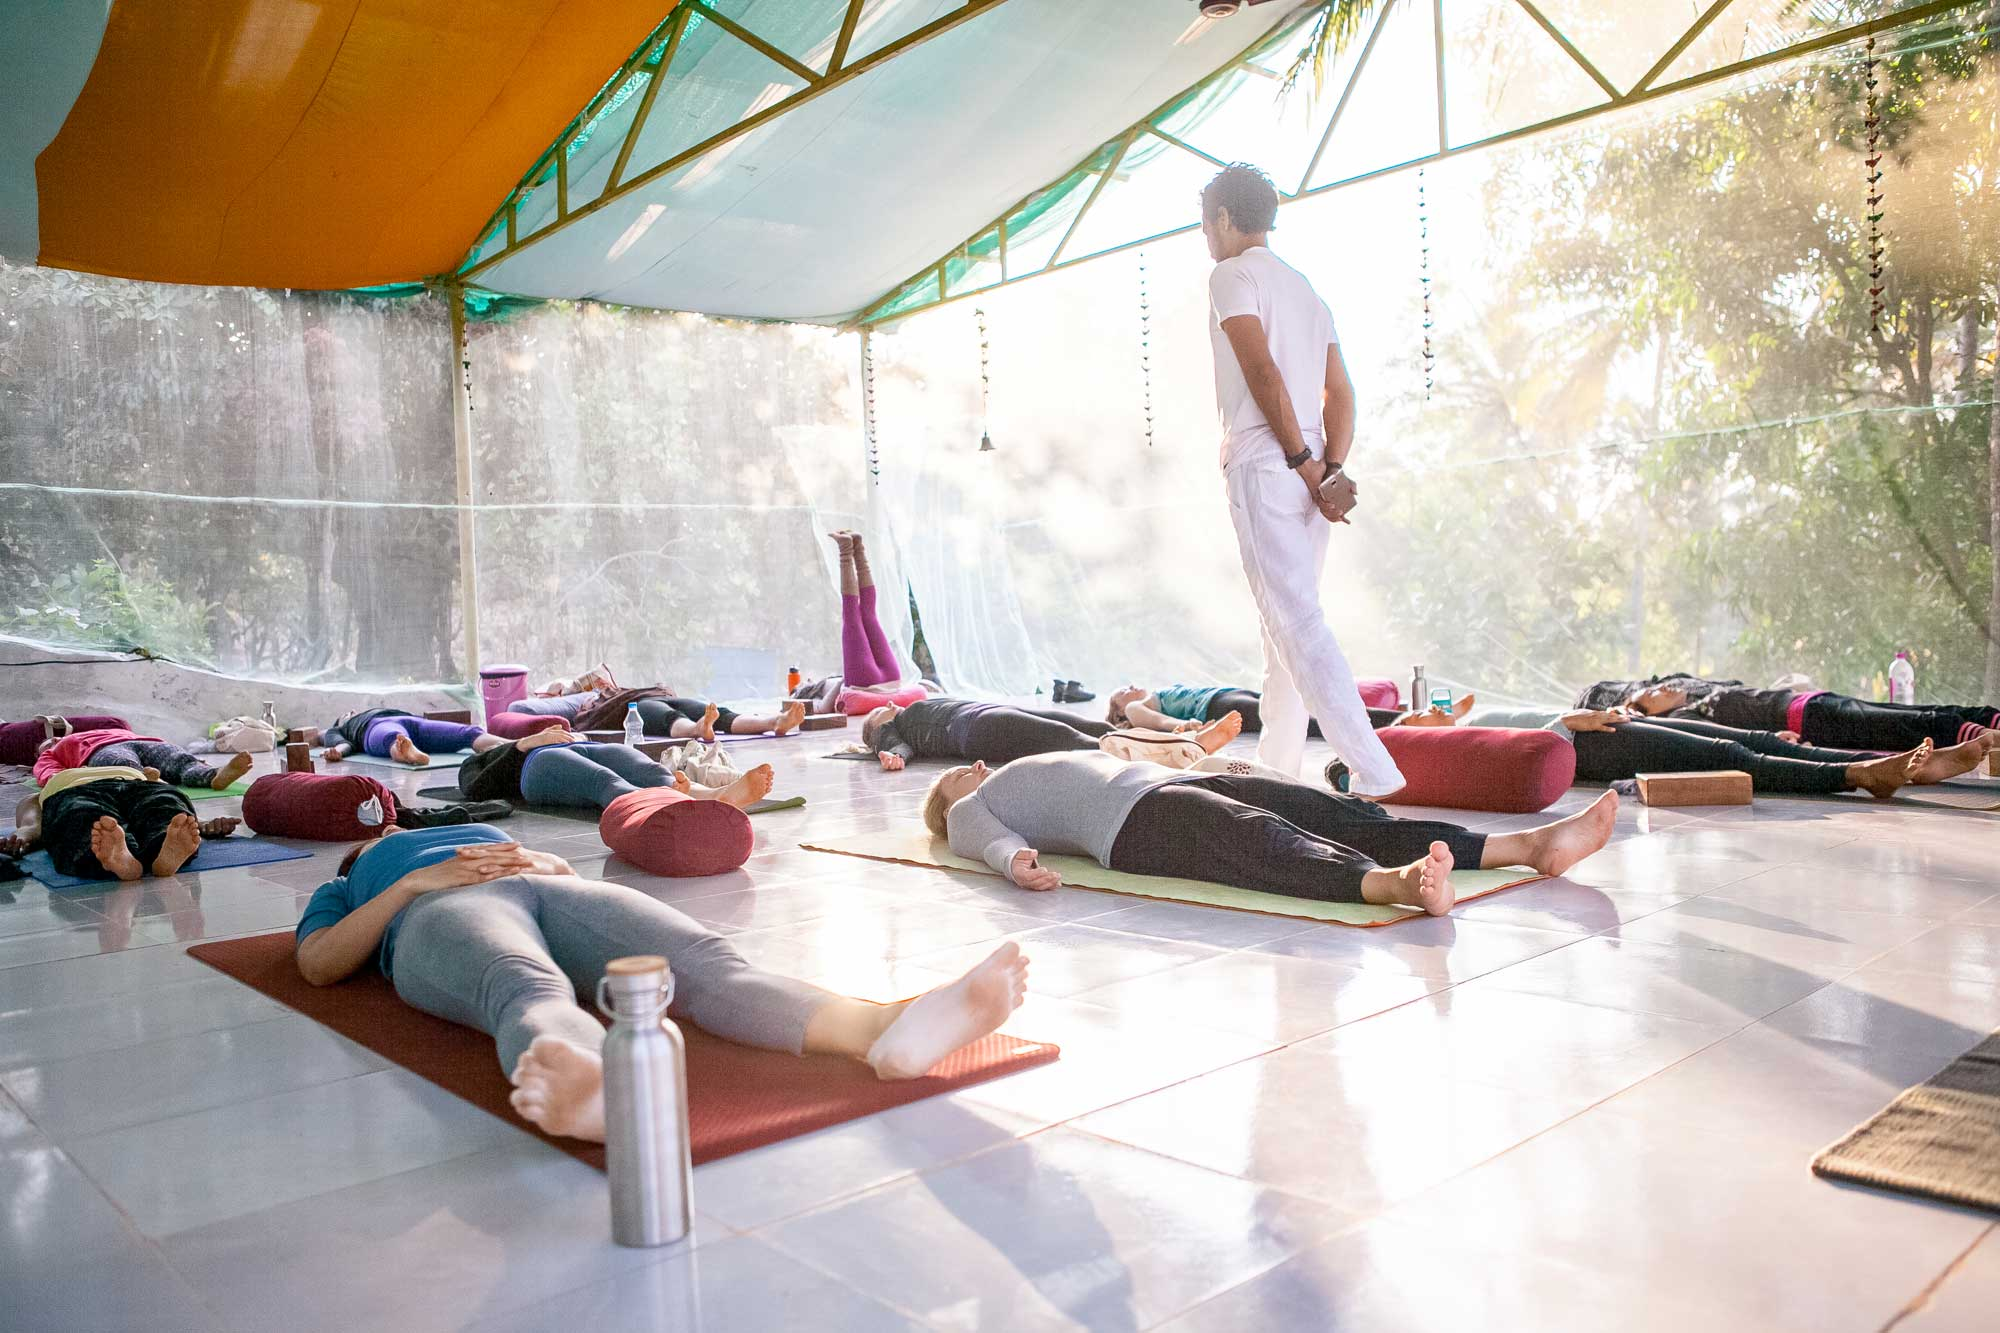 RYT 300 Hour Yoga Teacher Training in Goa, India – Sampoorna